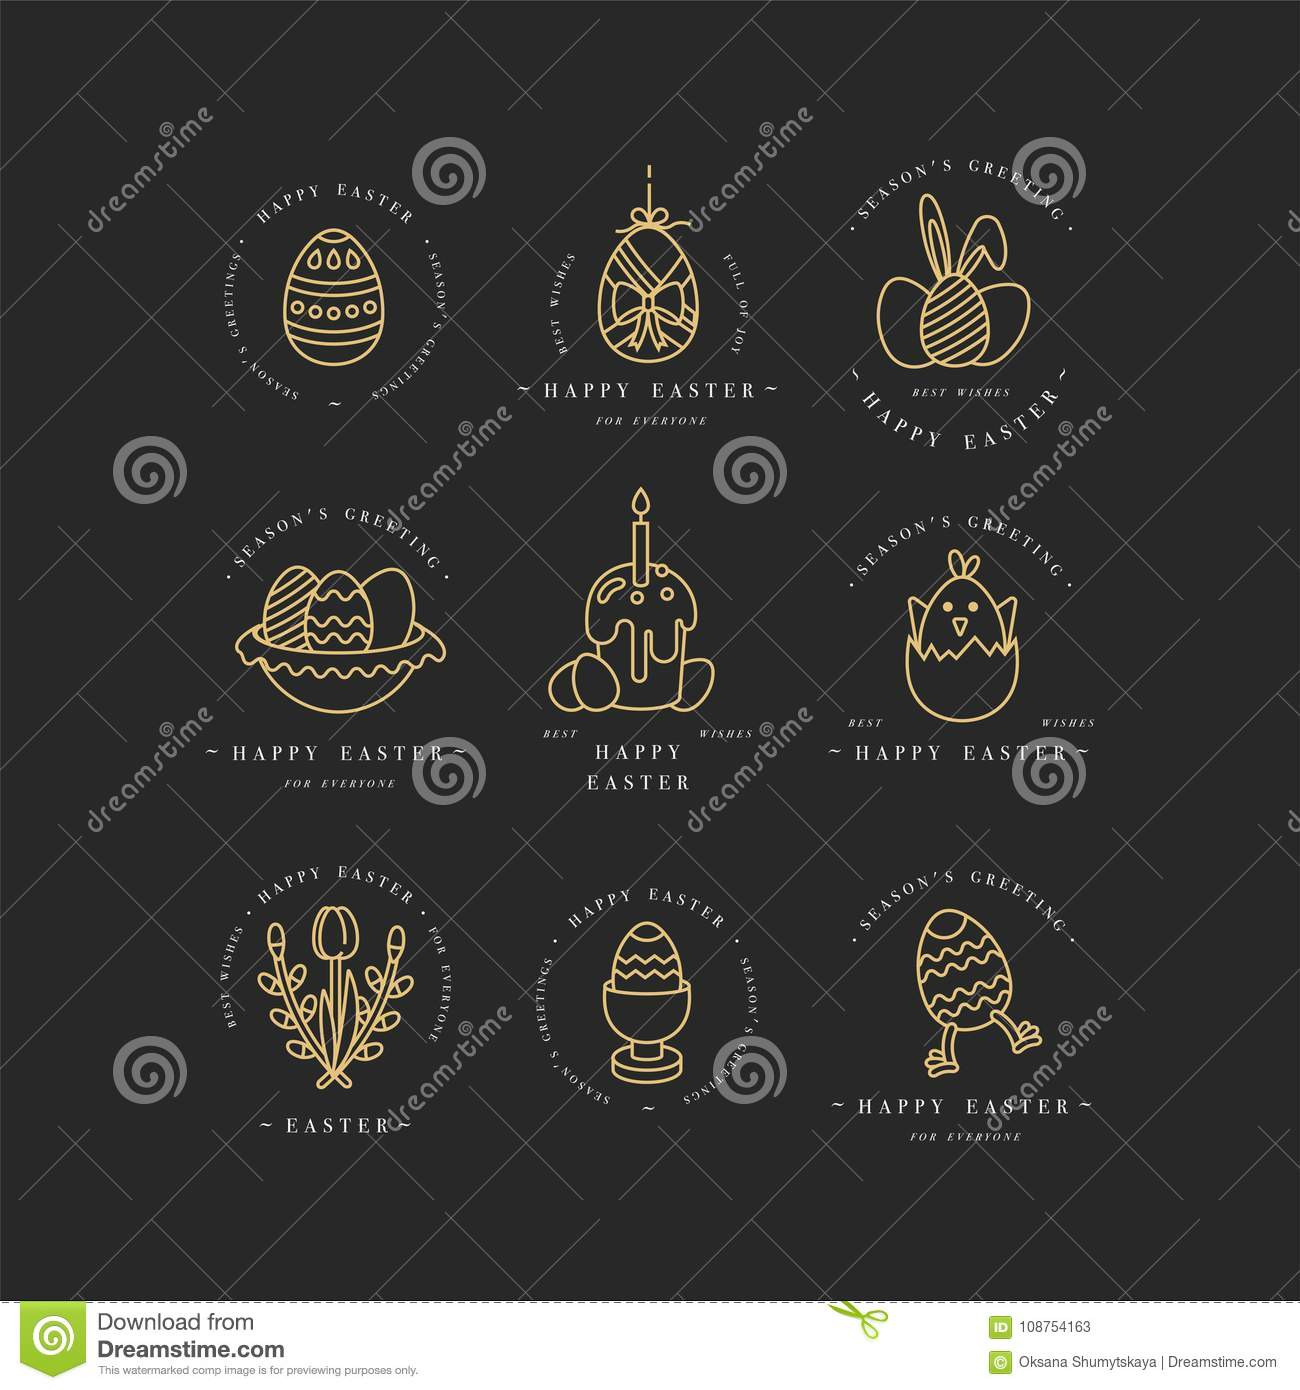 Vector linear golden design easter greetings elements set of vector linear golden design easter greetings elements set of typography ang icon for happy easter cards banners or posters and other printables m4hsunfo